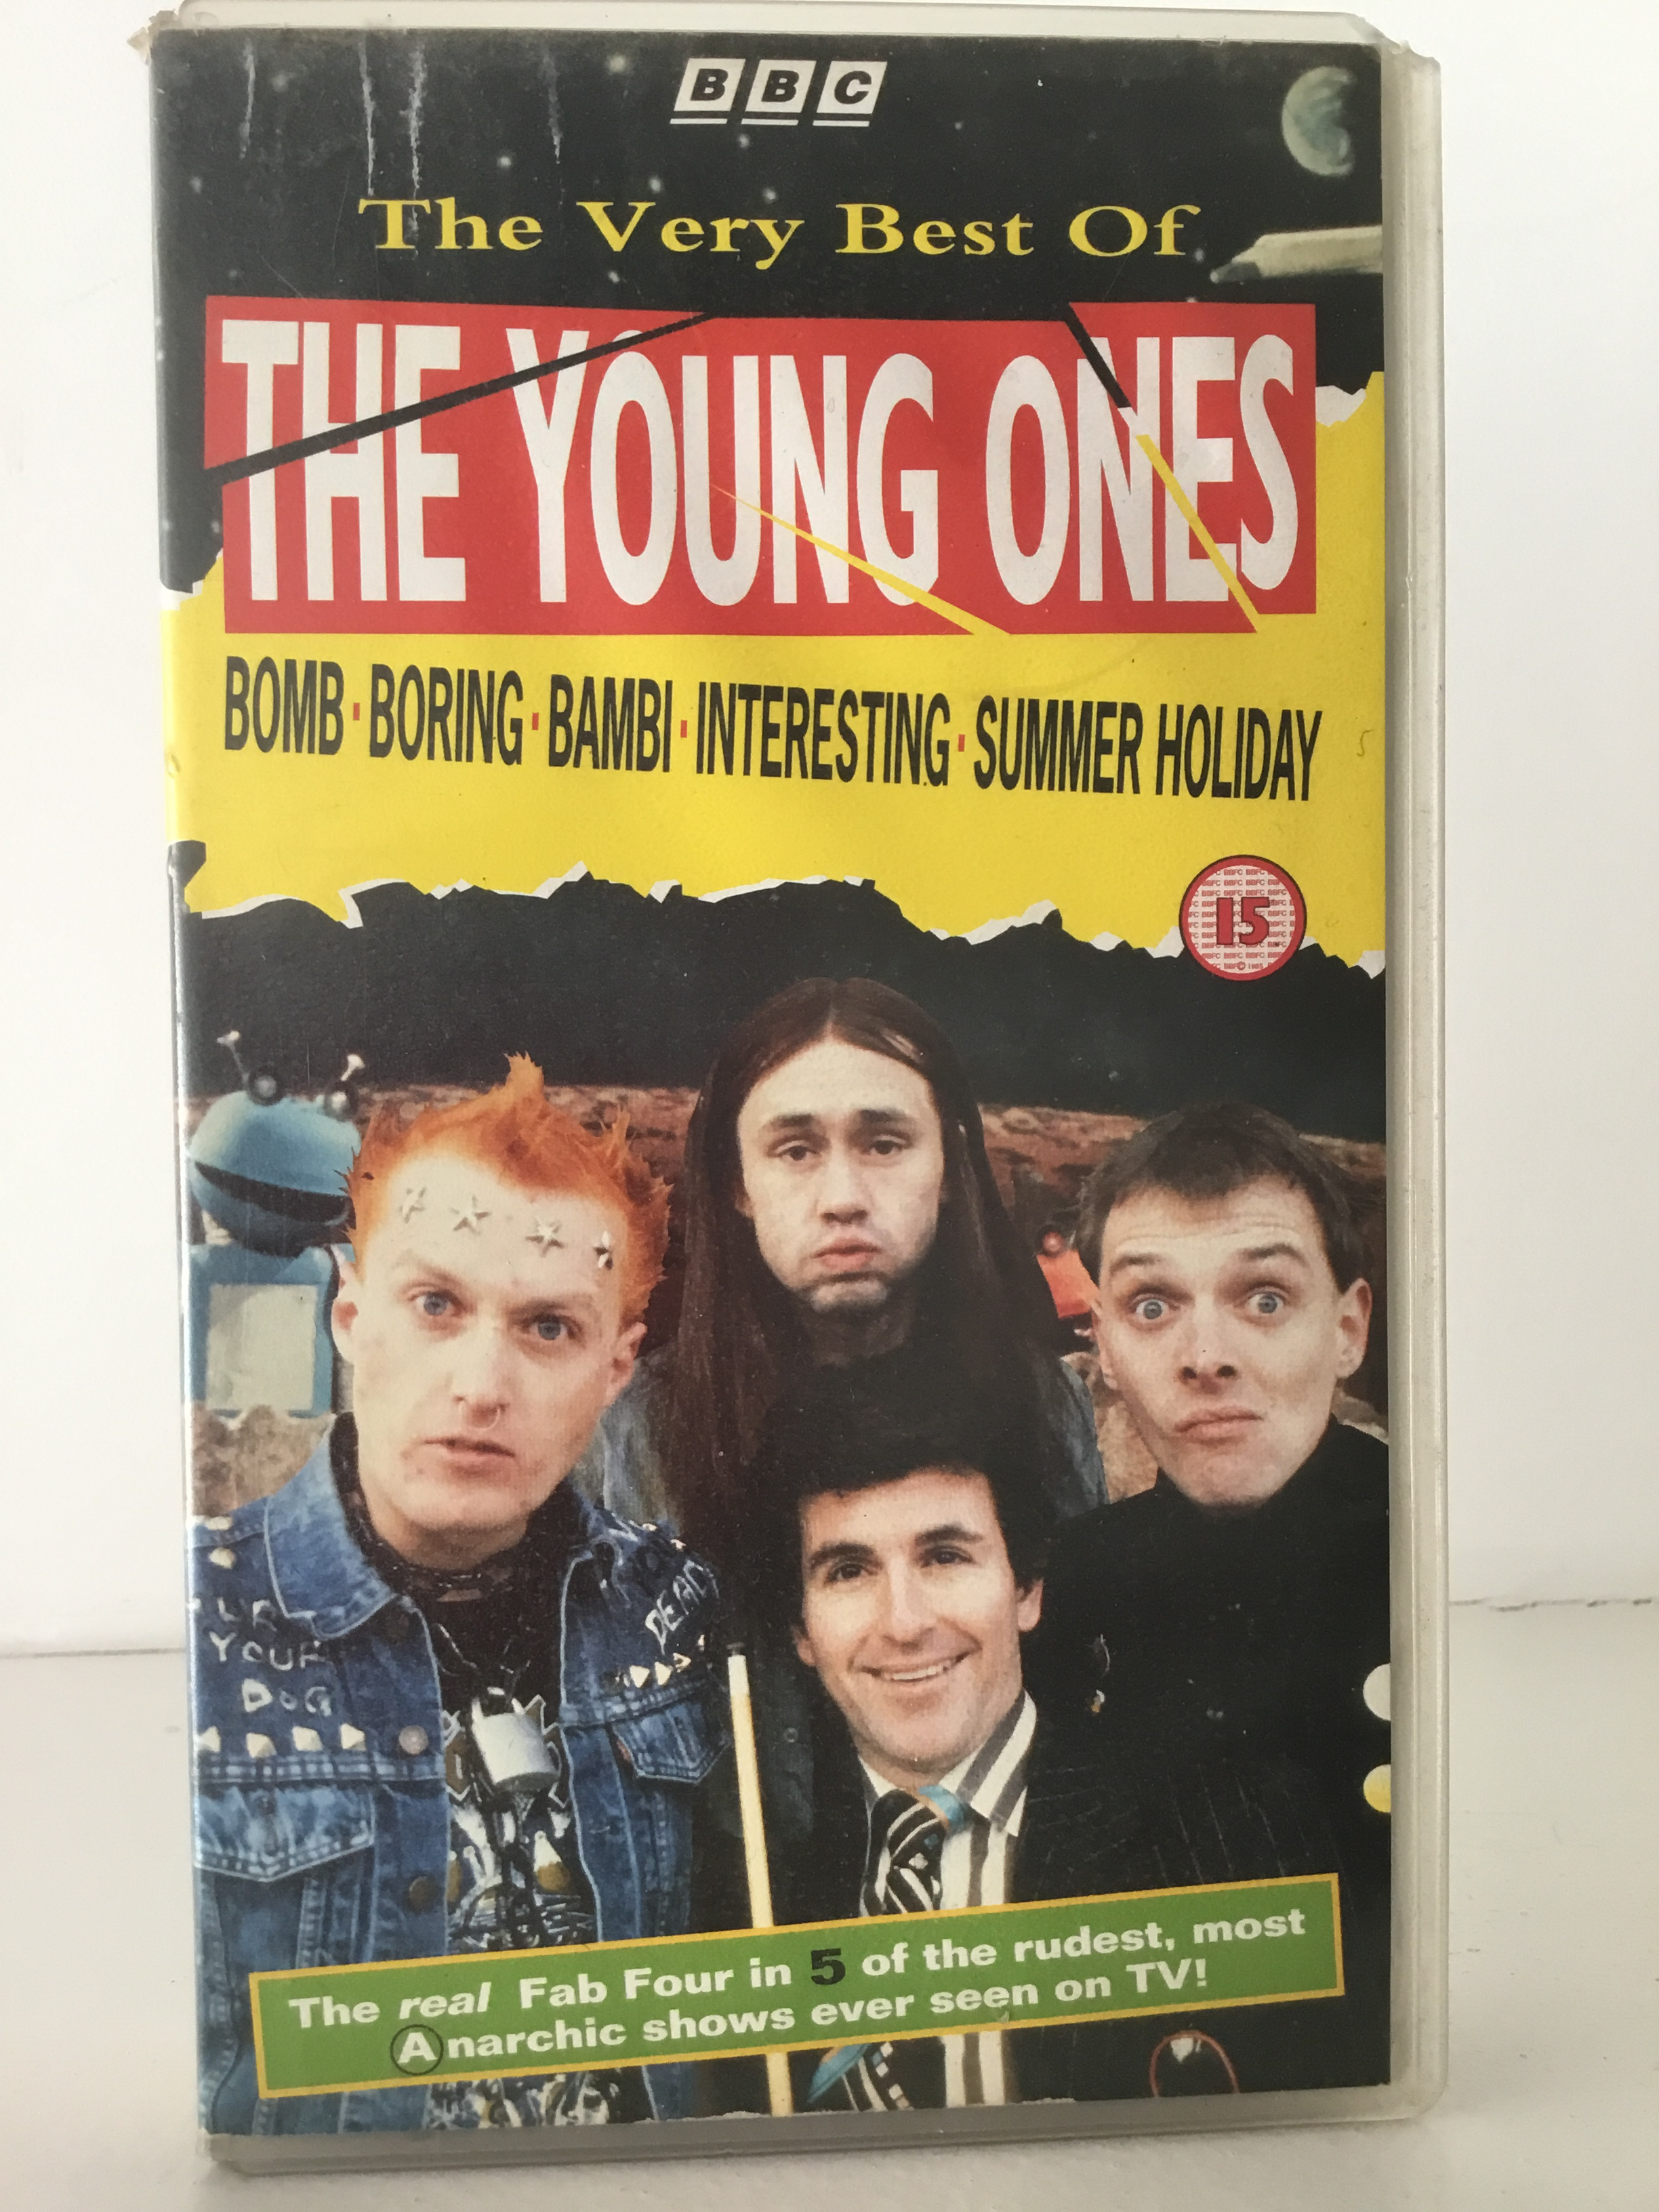 The very best of The Young Ones VHS